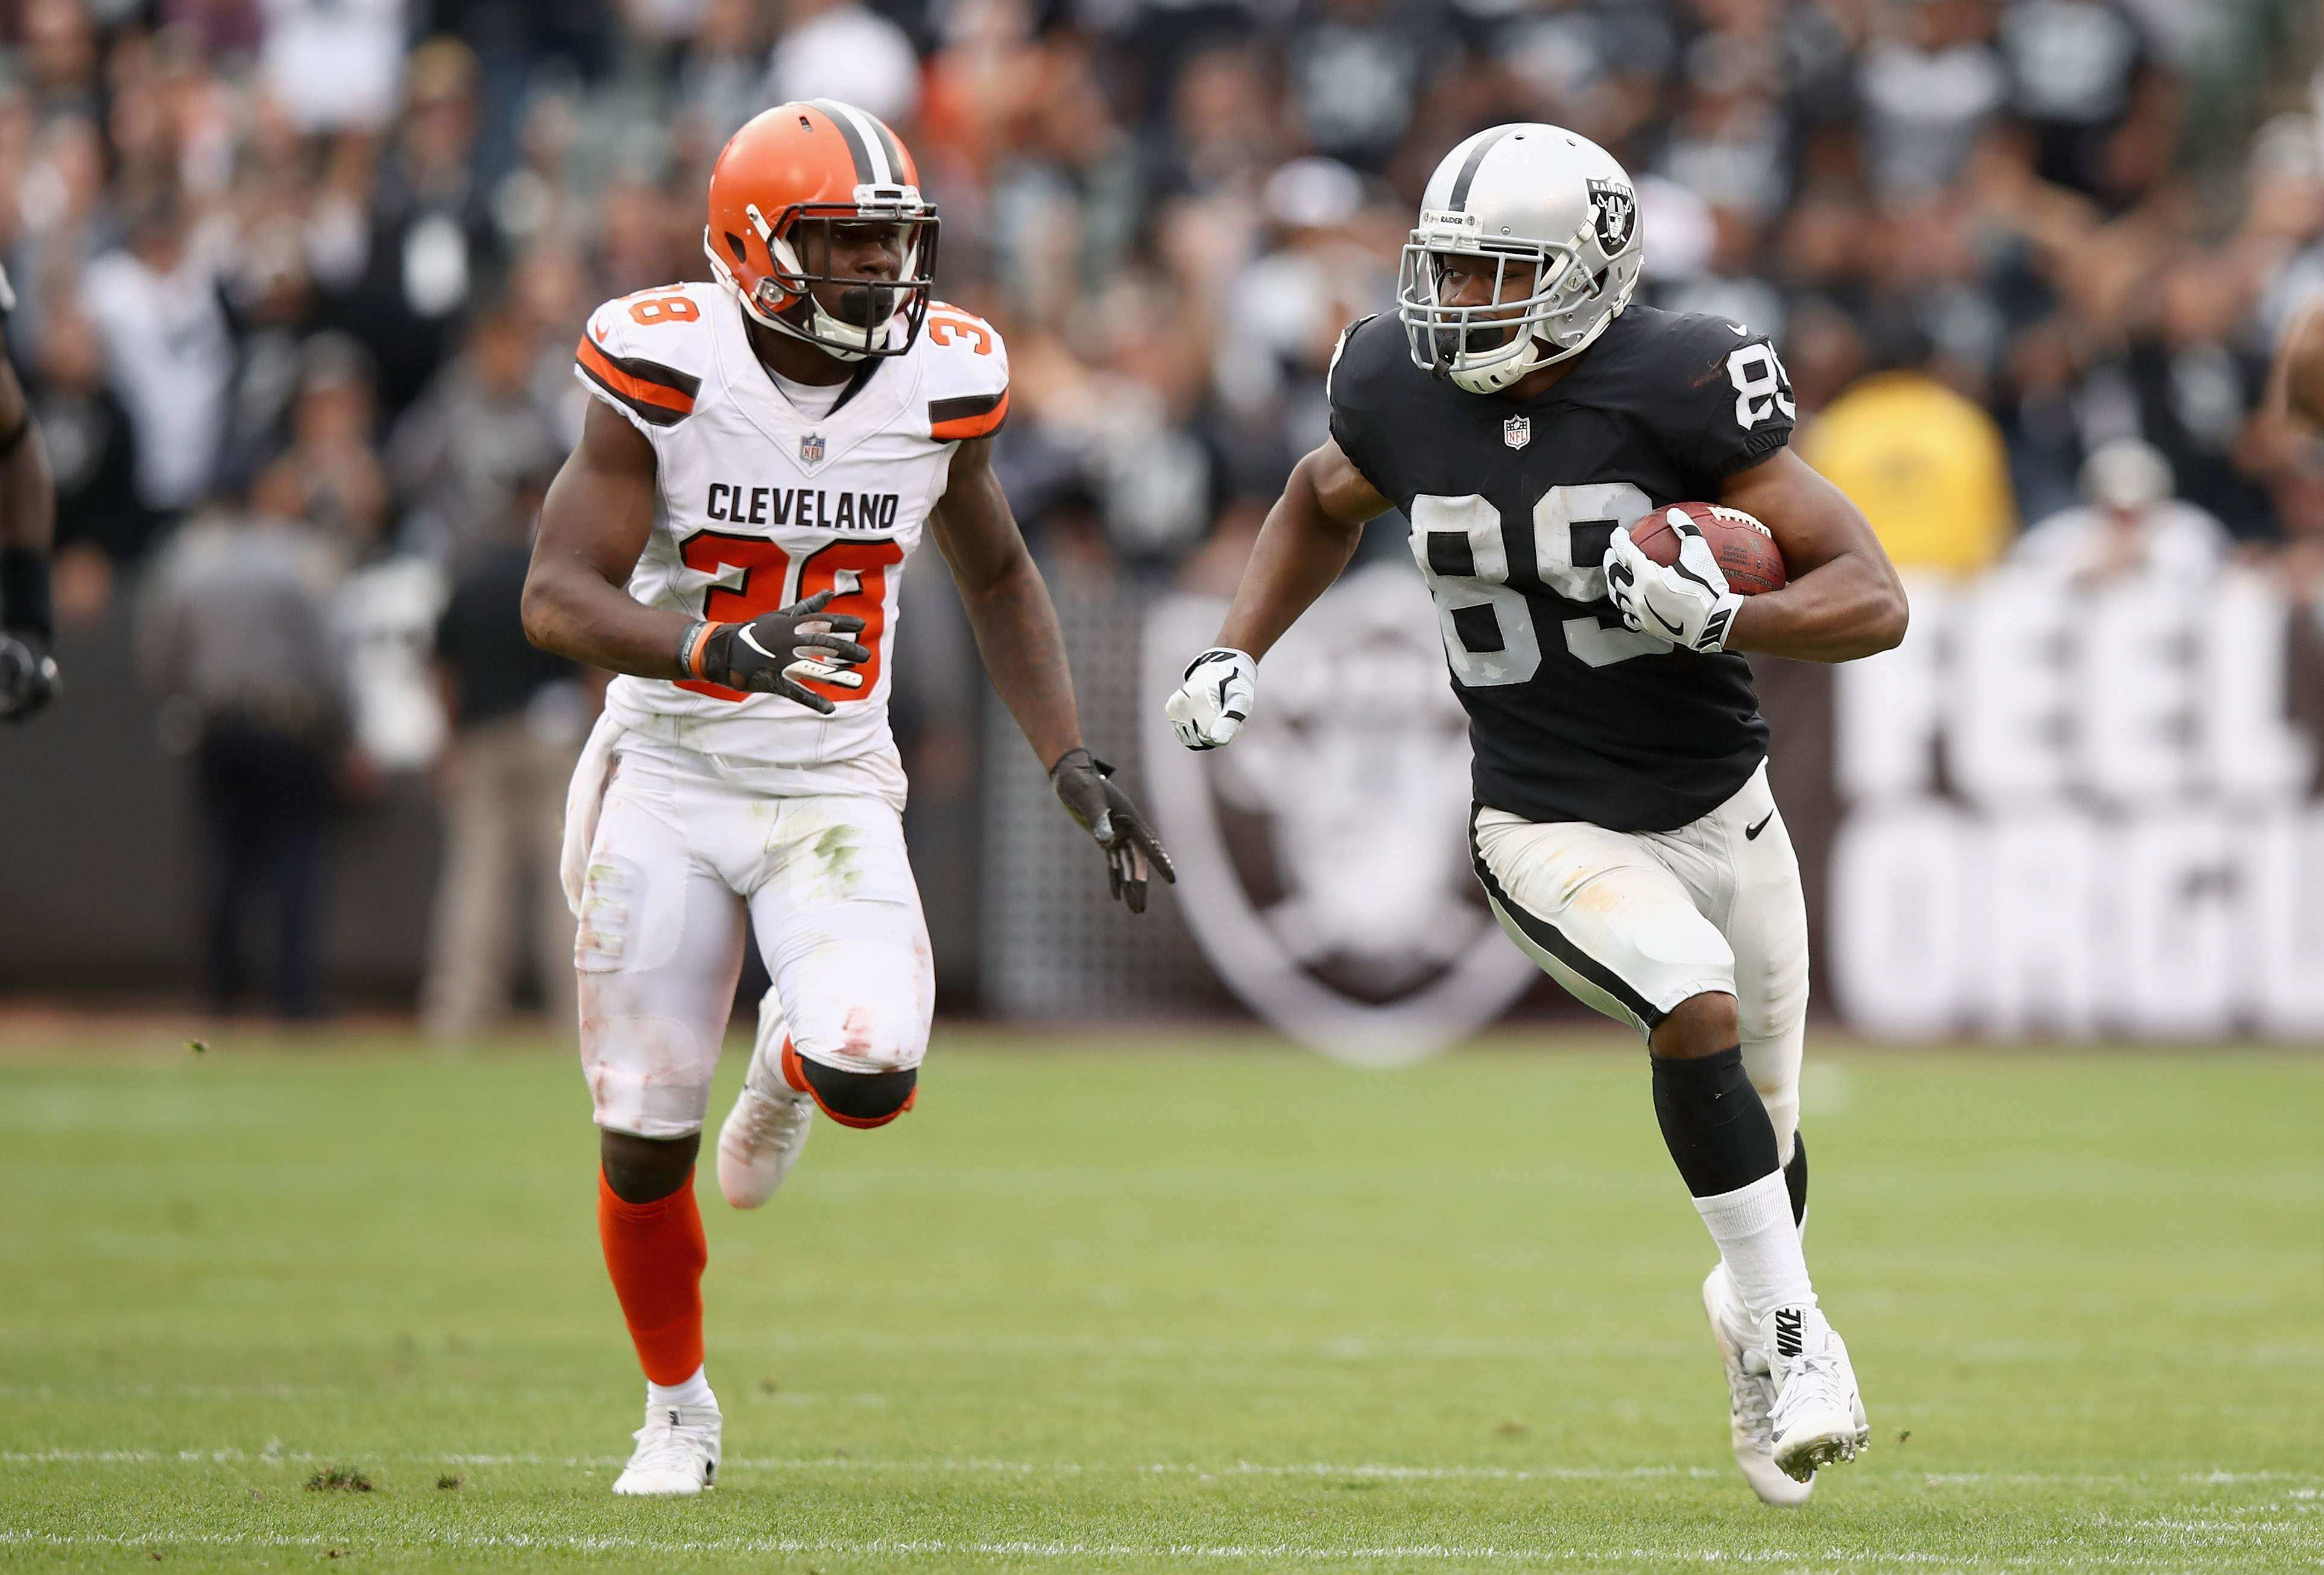 Oakland Raiders' Wide Receiver Amari Cooper On the Trade Block